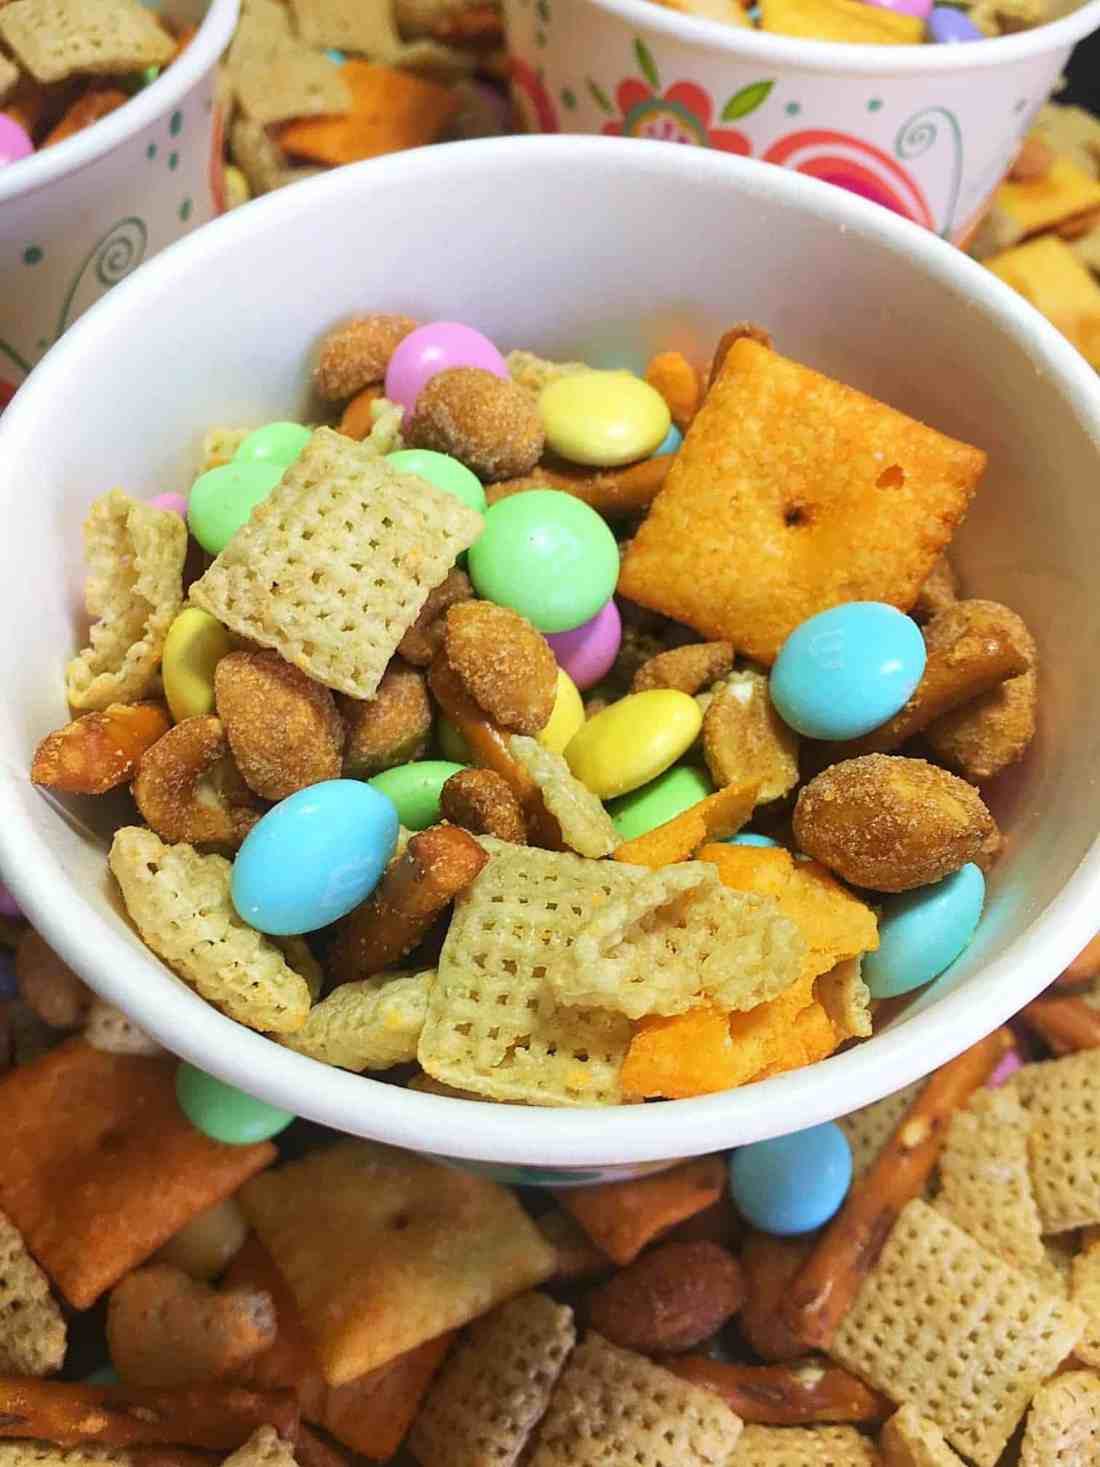 This delicious and easy Springtime Sweet and Salty Chex Mix is the best of both worlds! Featuring sweet flavors from m&m's and honey roasted peanuts, and salty flavors from a cheddar cheese mix, you'll quickly become addicted to this tasty chex mix dessert recipe that takes only 5 minutes to make!